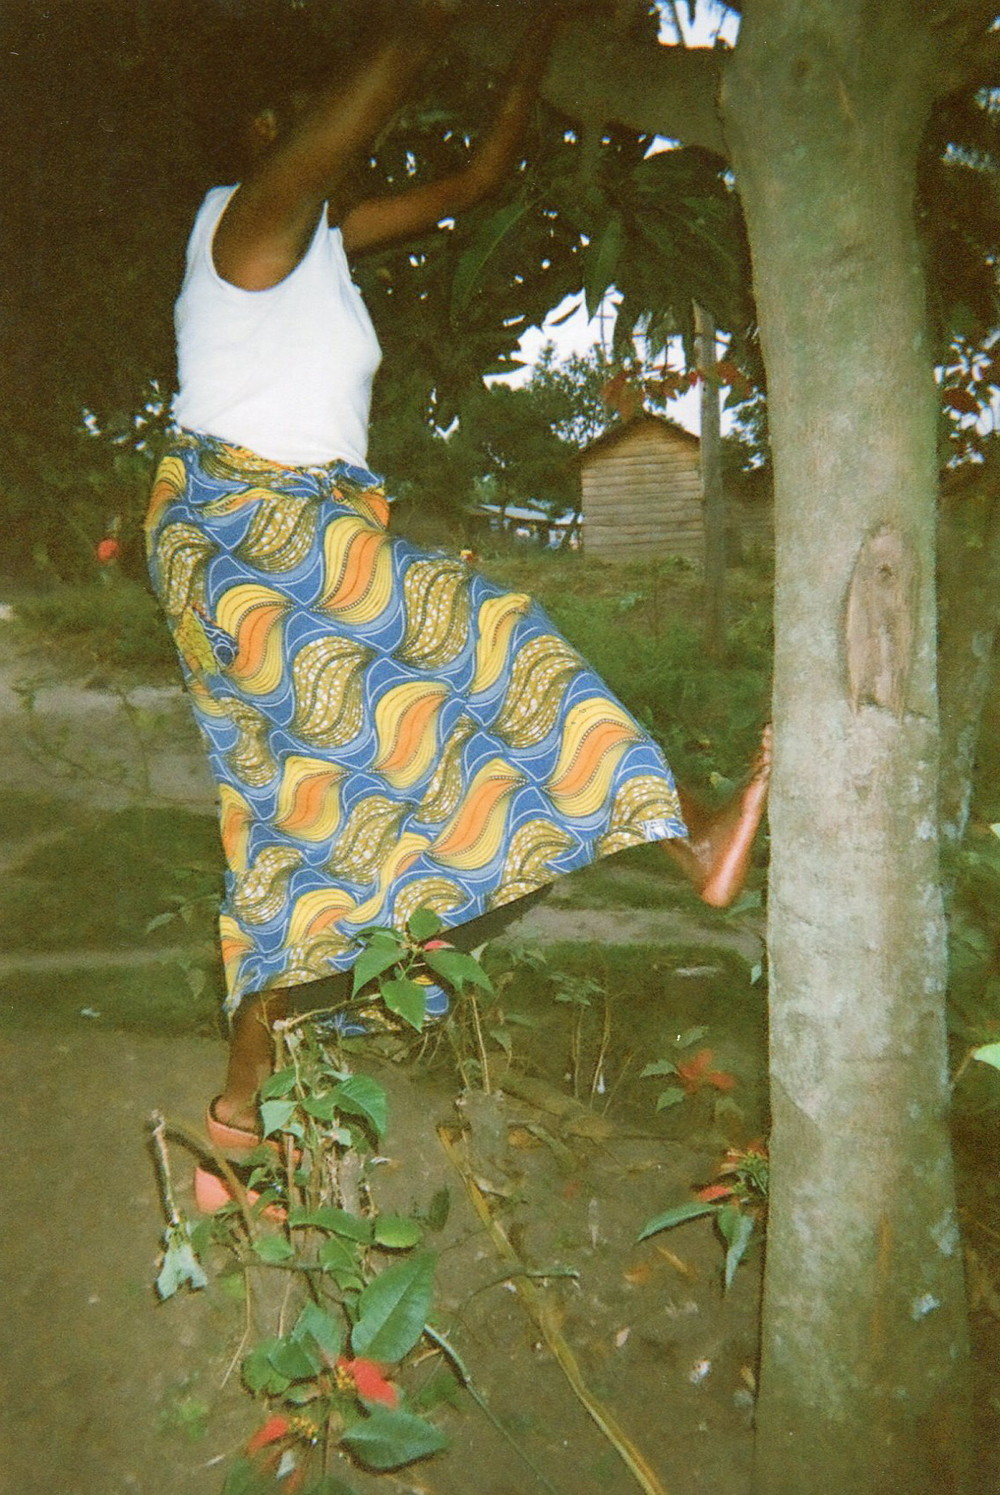 I jumped on a tree to cut mangoes because I was very hungry. When they saw me I was beaten to death.